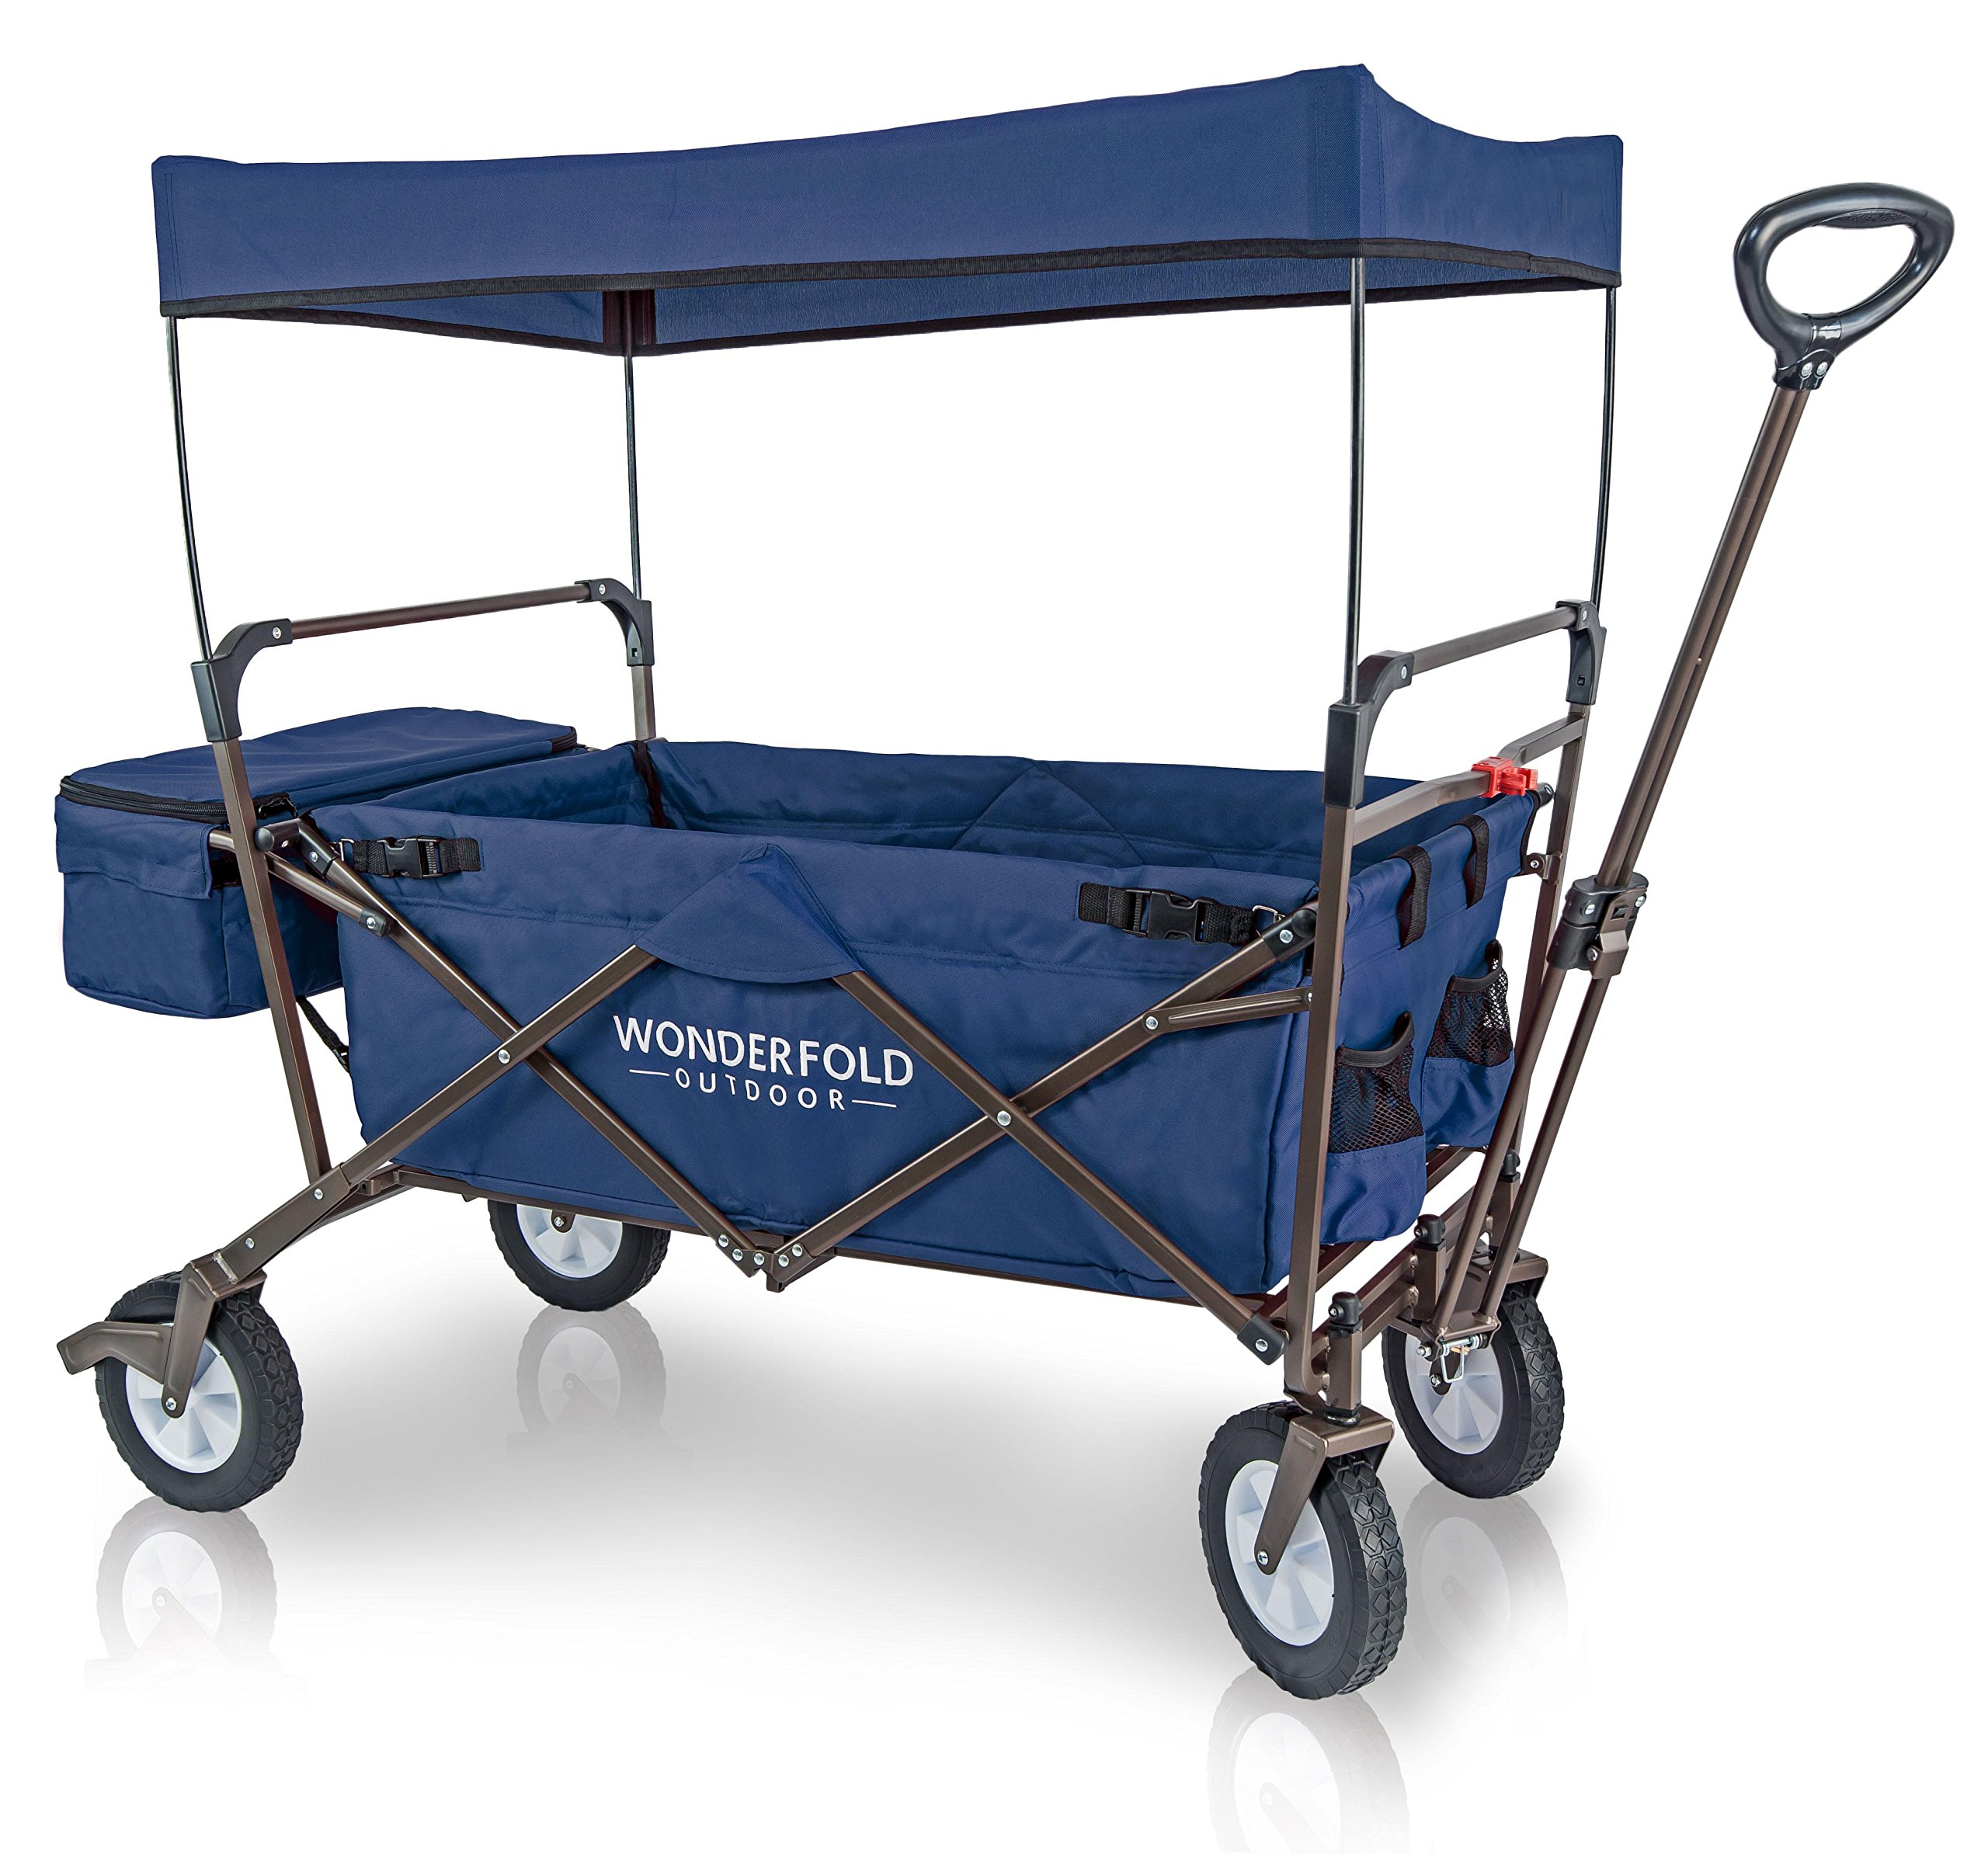 WonderFold Outdoor 2017 All New Collapsible Canopy Folding Wagon Utility Cart with 180° Steering Telescoping Handle with Spring Bounce, Auto Safety Locks, Rubber Tire, and Stand, Midnight Blue